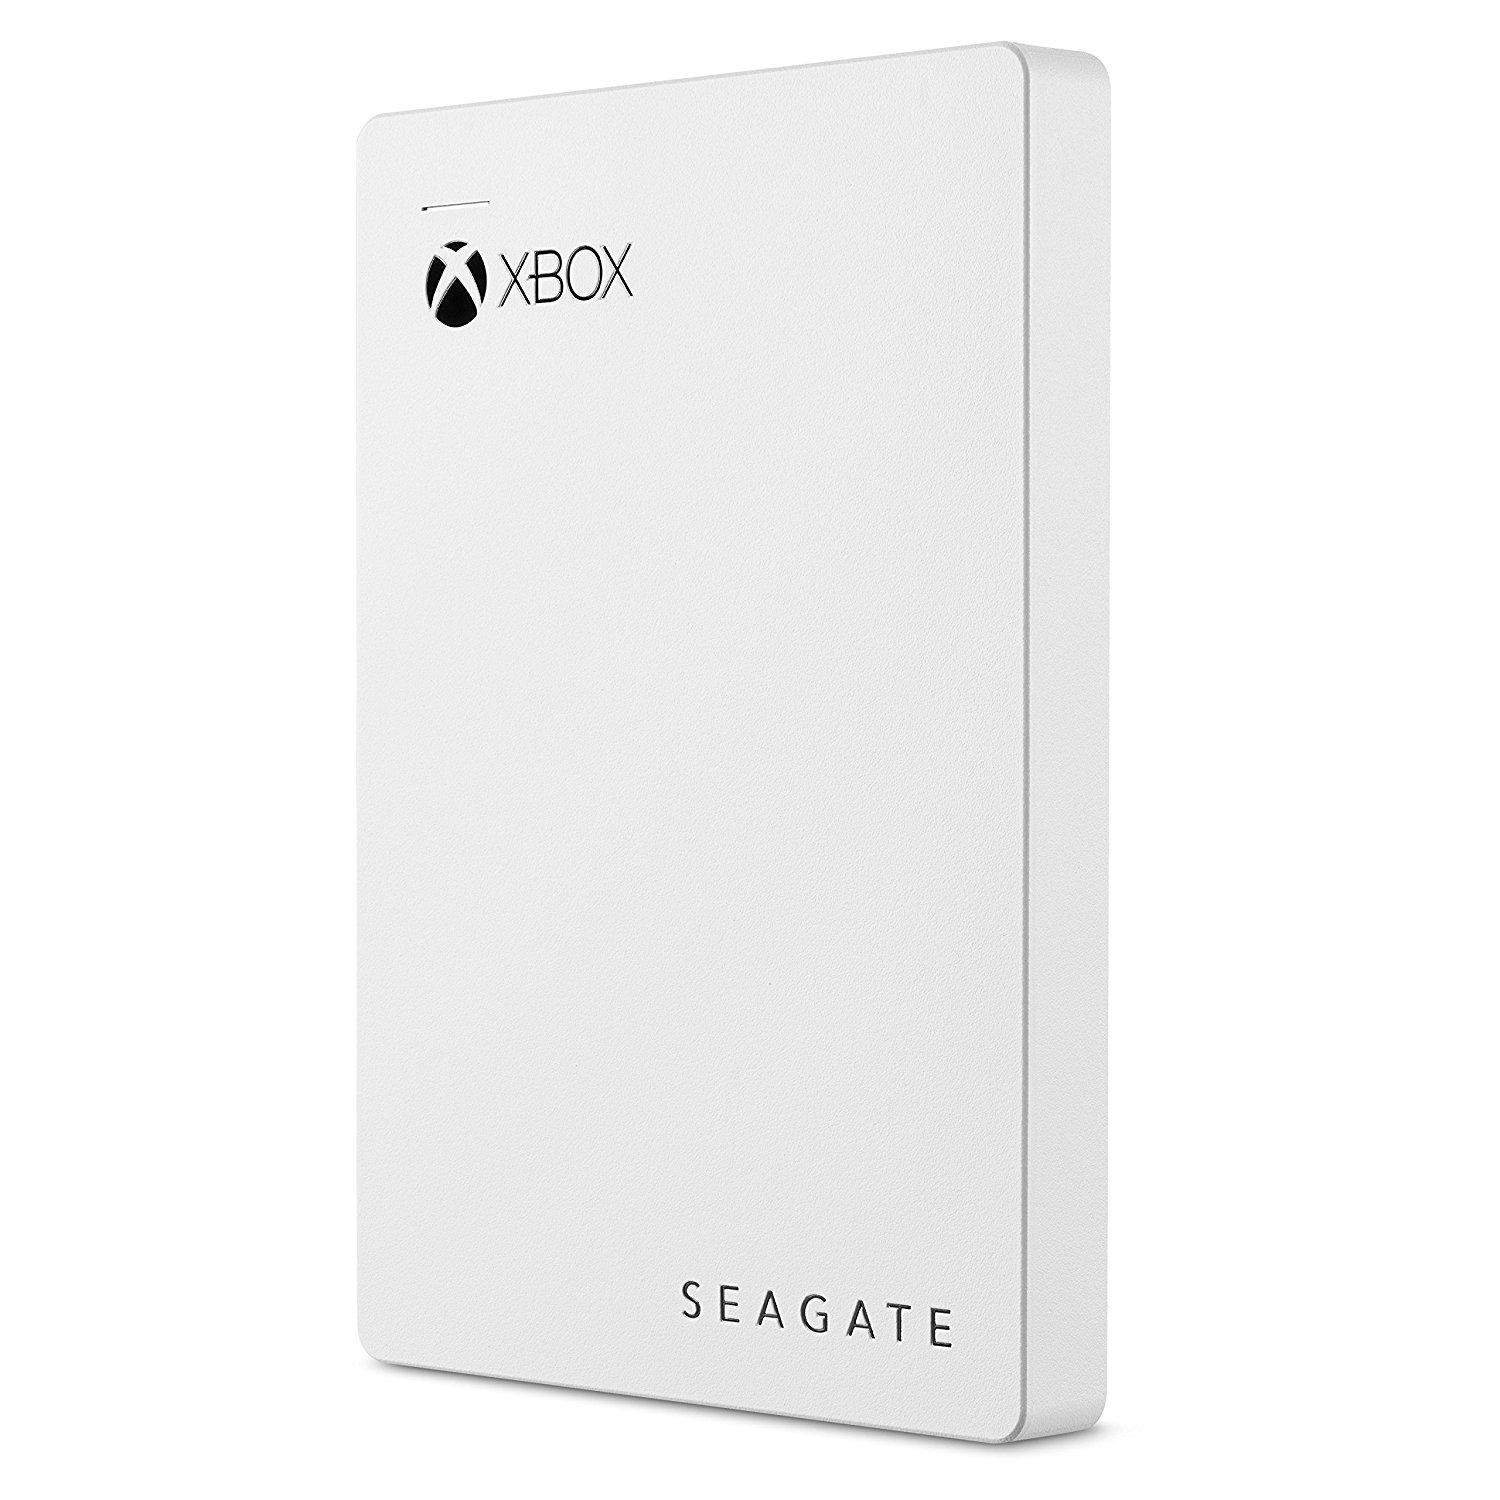 seagate 4to 2 1 2 usb3 game drive xbox blanc disque dur externe. Black Bedroom Furniture Sets. Home Design Ideas